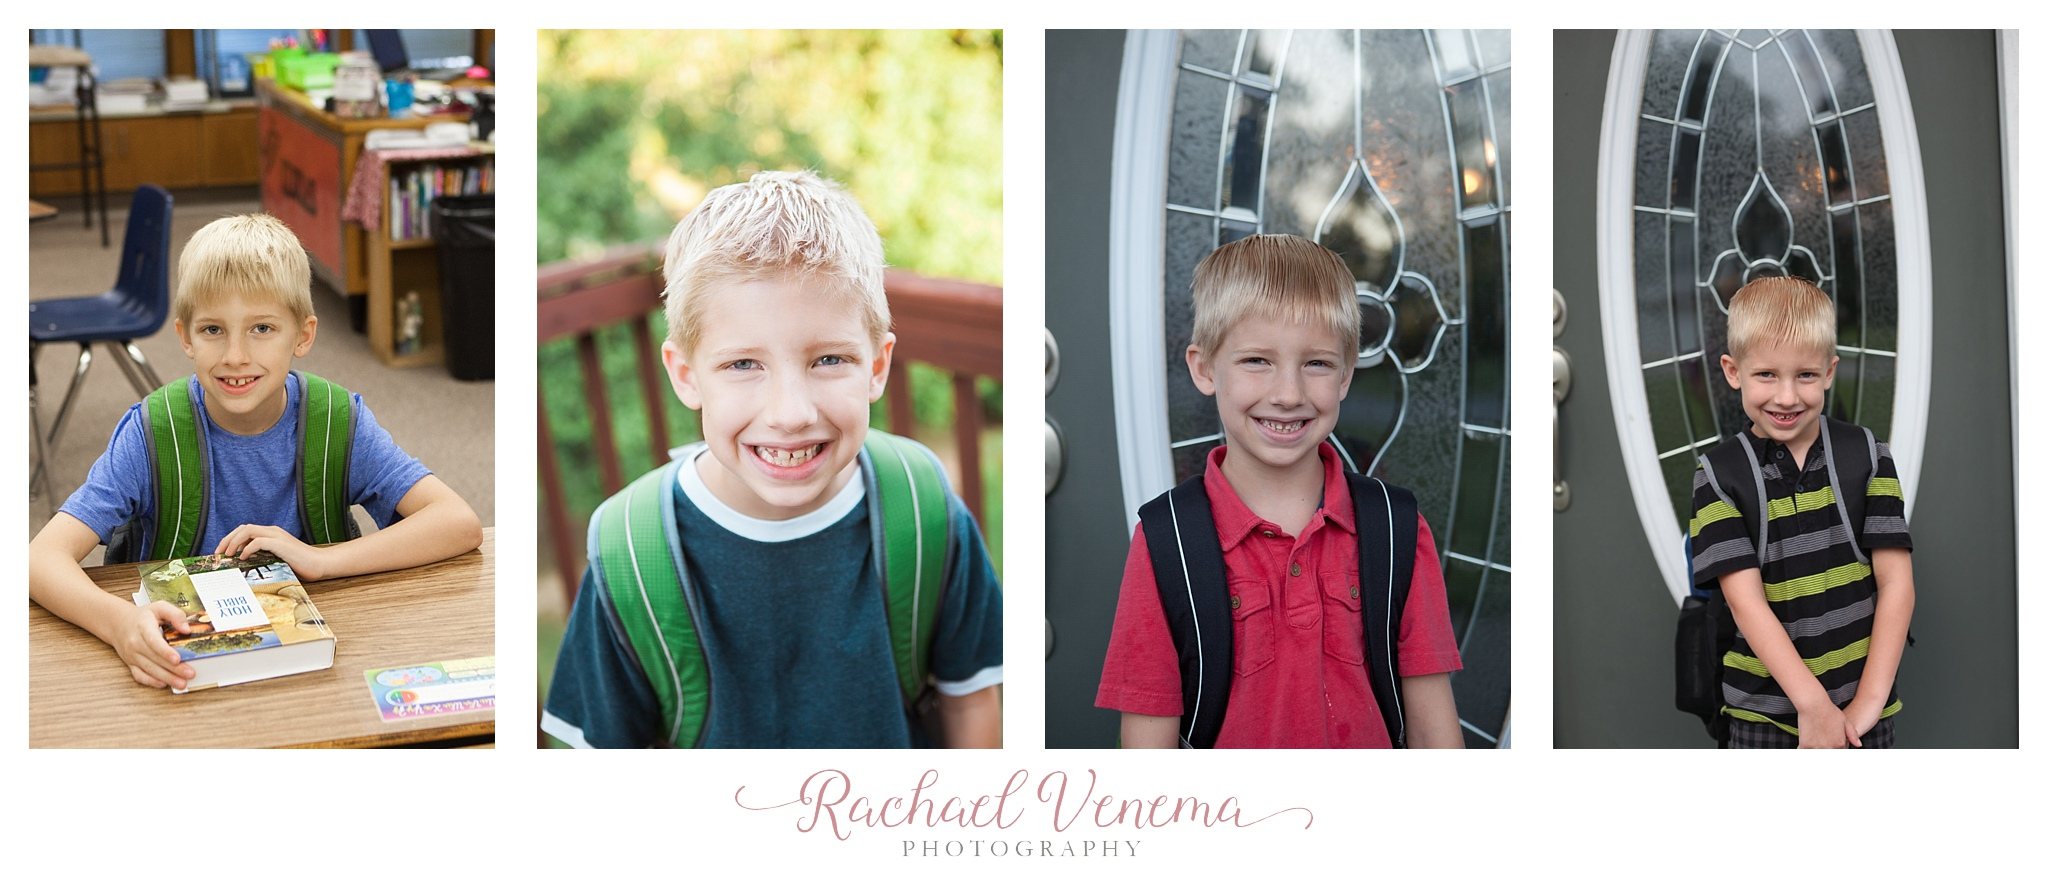 9-Tips-First-Day-of-School-Photos-4.jpg